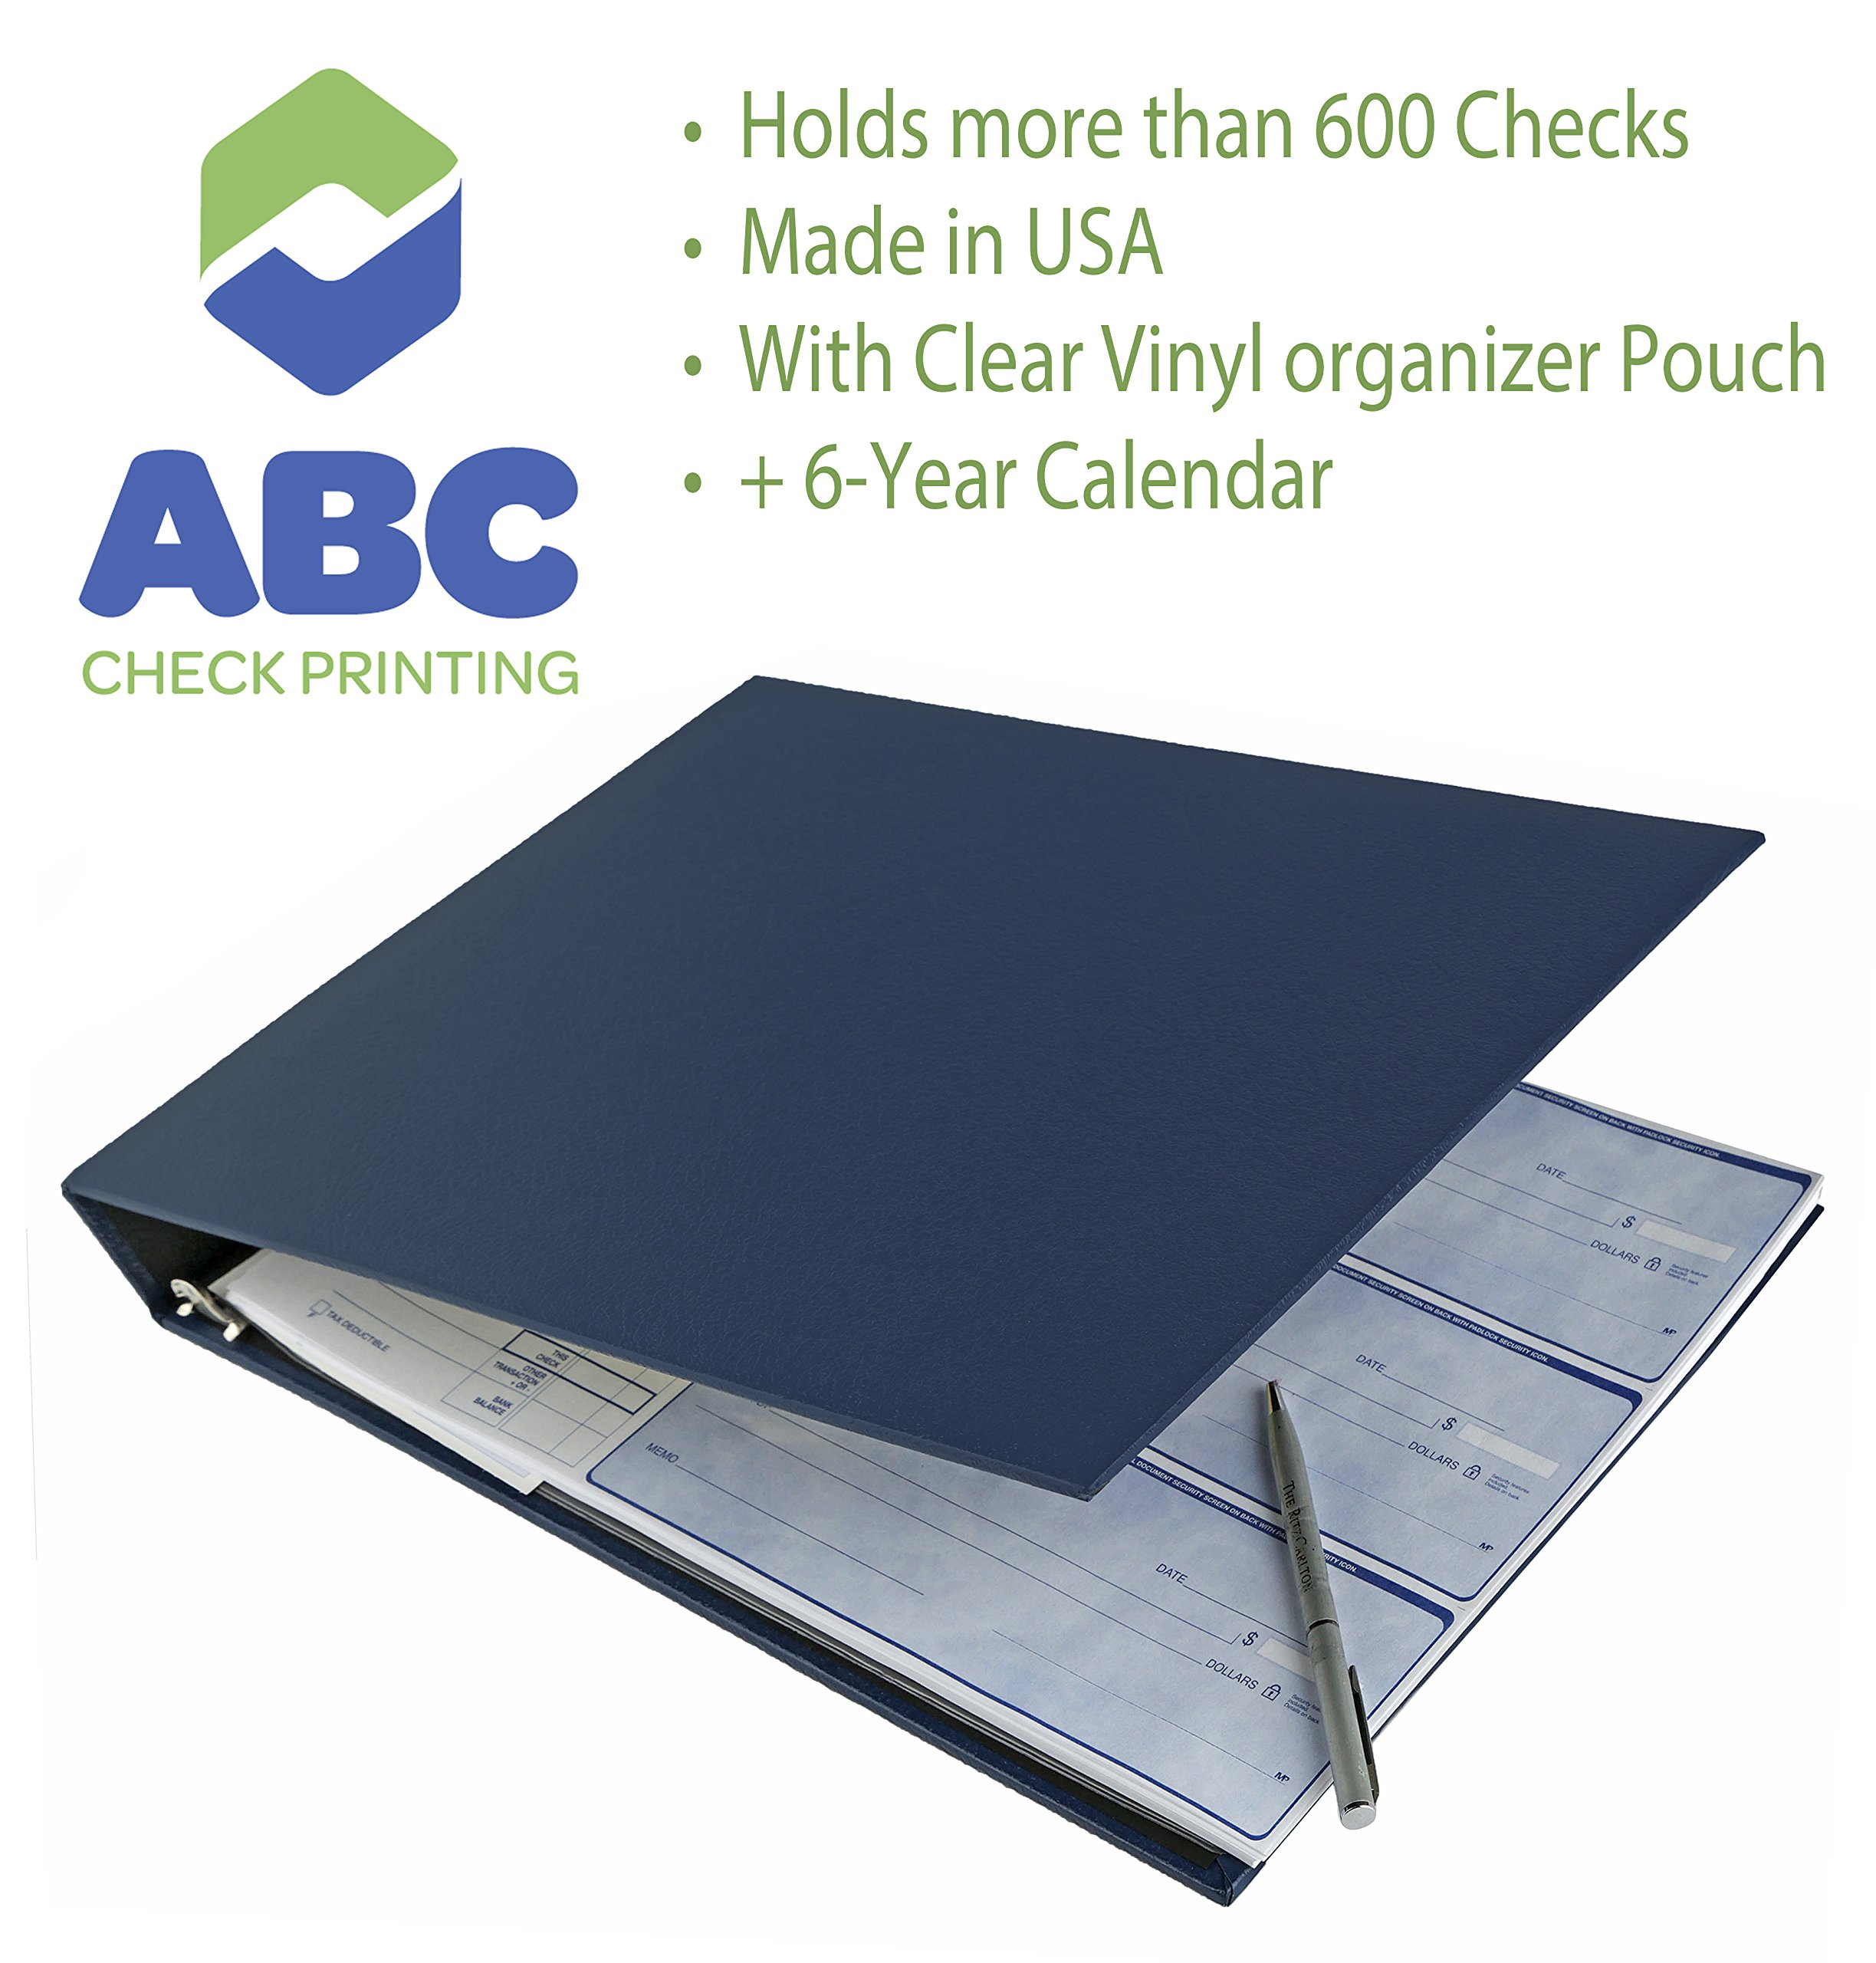 "Abc Durable 7-Ring 3 On A Page Business Check Book Binder, 600 Check Capacity, With Clear Vinyl Pouch Bill Keeper – Removable 6-Year Calendar ""Color Blue"""